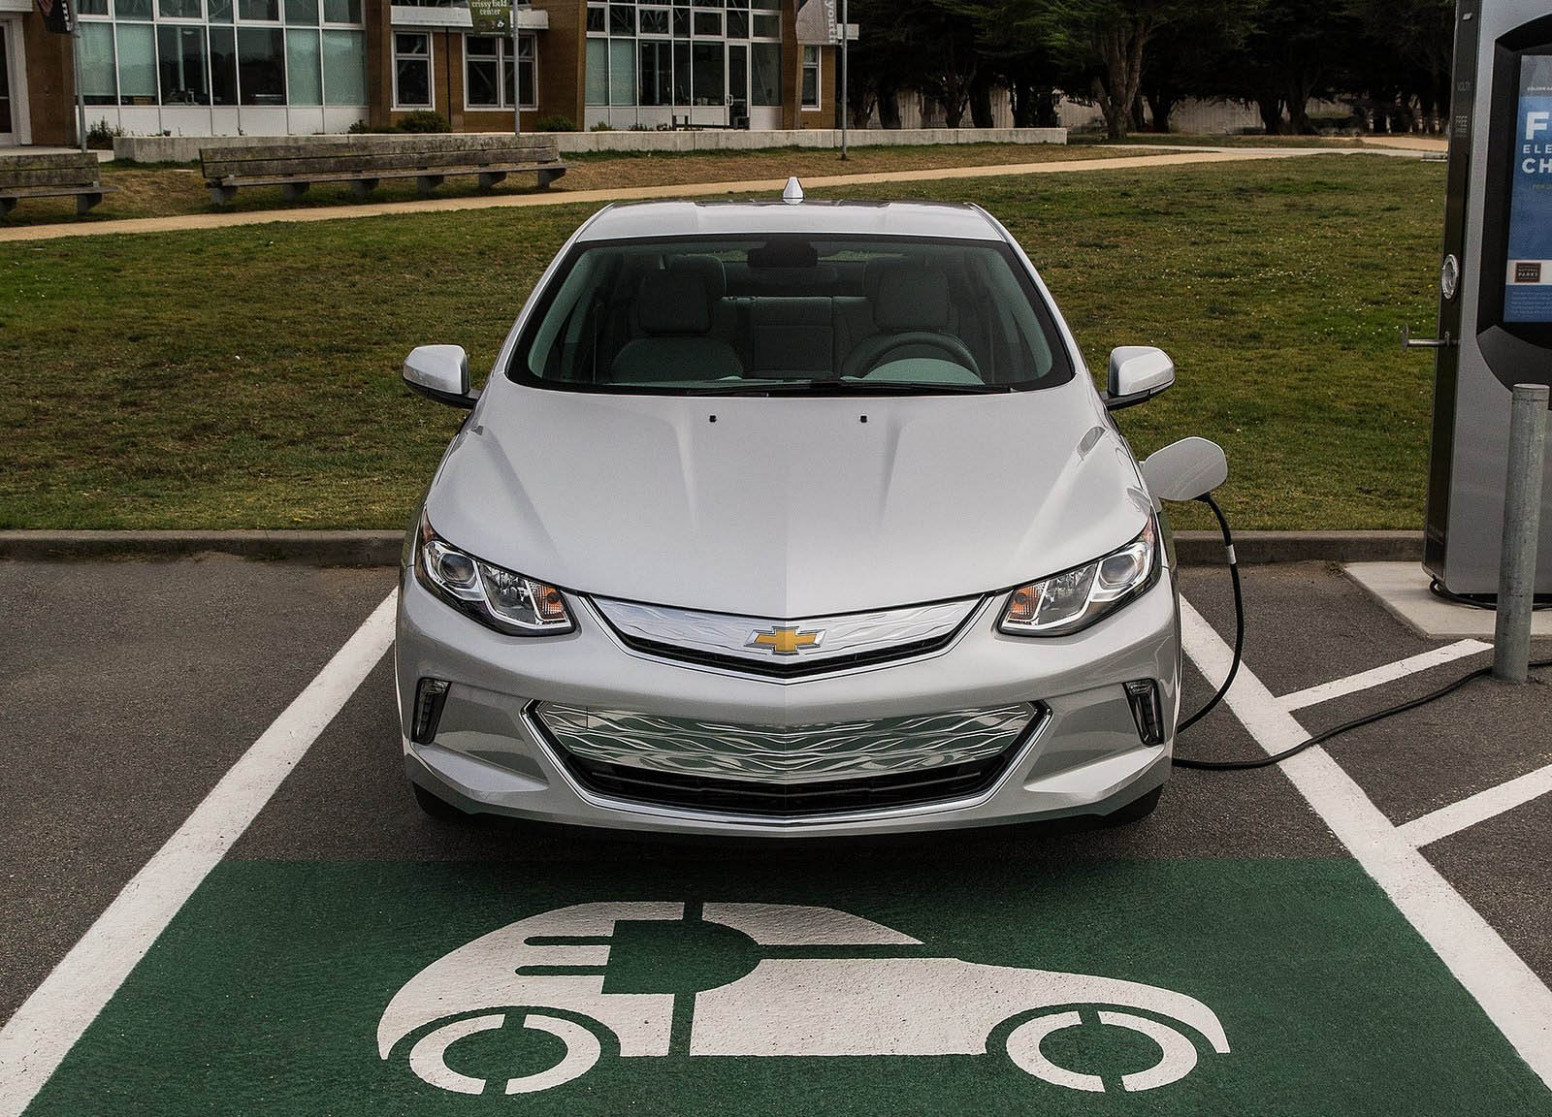 Rumors 2022 Chevrolet Volt